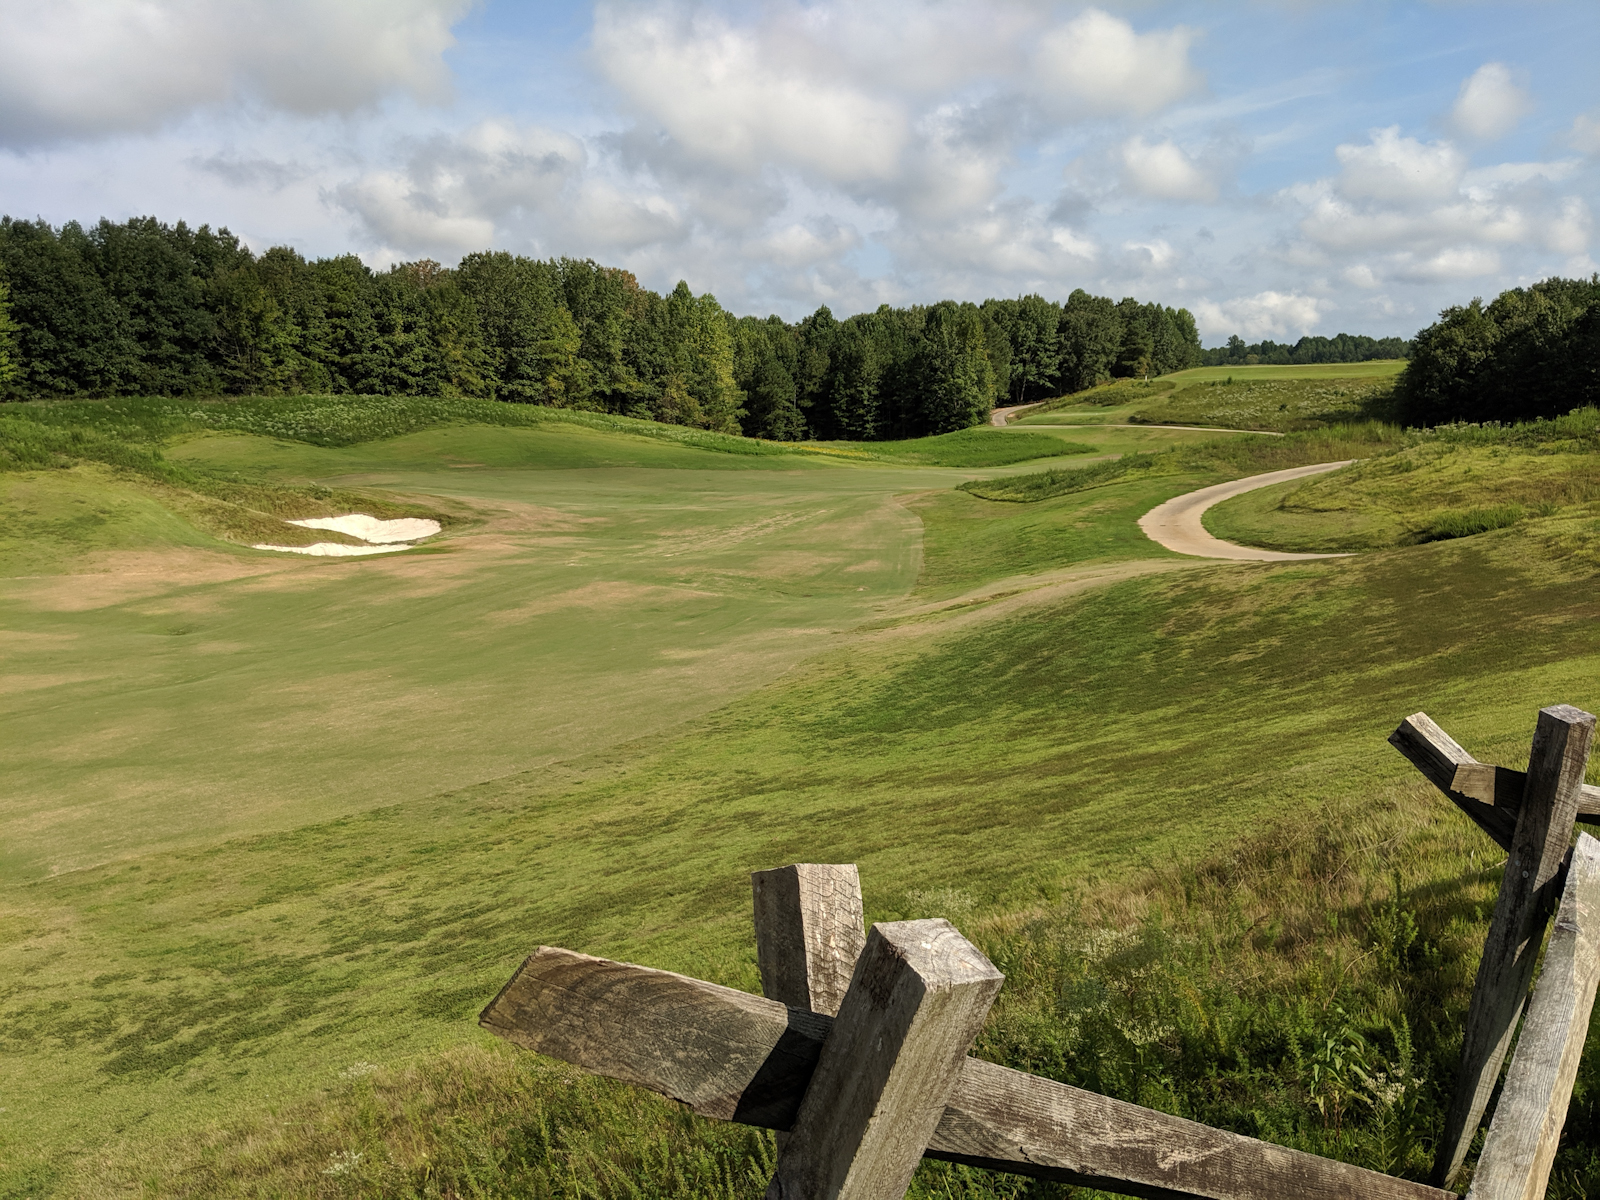 Royal_New_Kent_Gof_Club-Course_by_Terri_Aigner-53-of-74